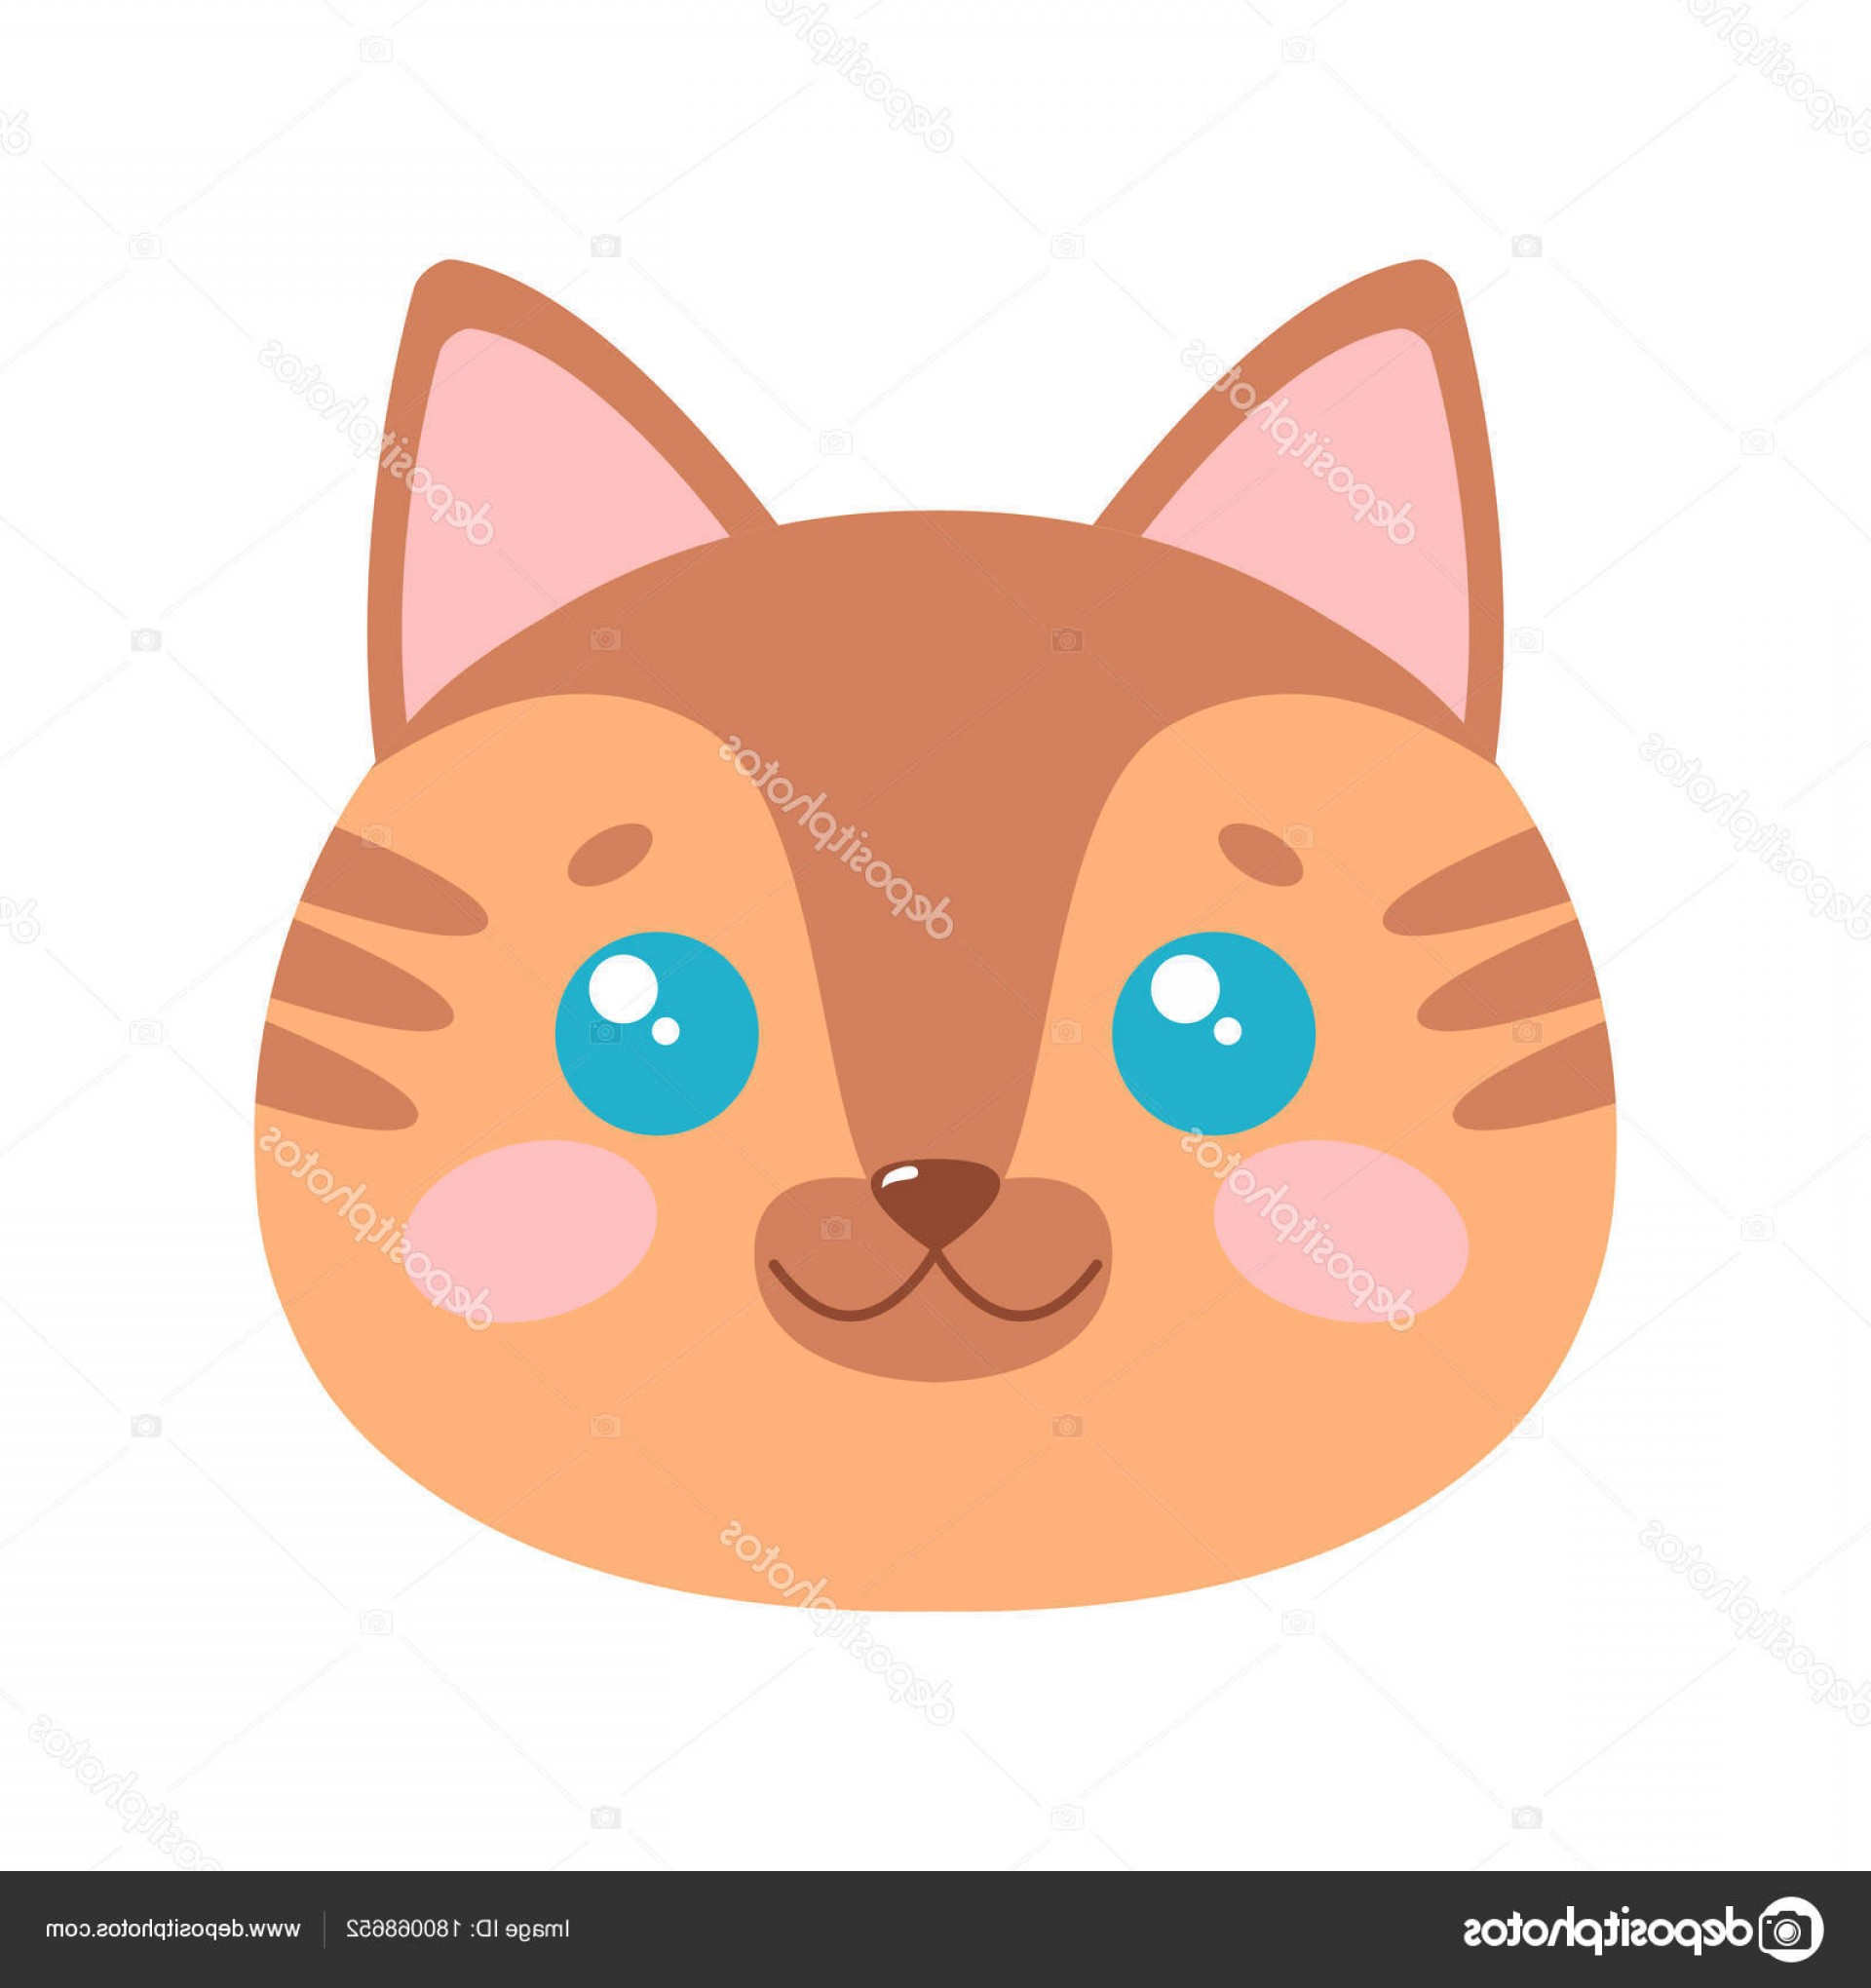 Malee Cat Head Silhouette Vector: Stock Illustration Cute Cat Face Vector Illustration